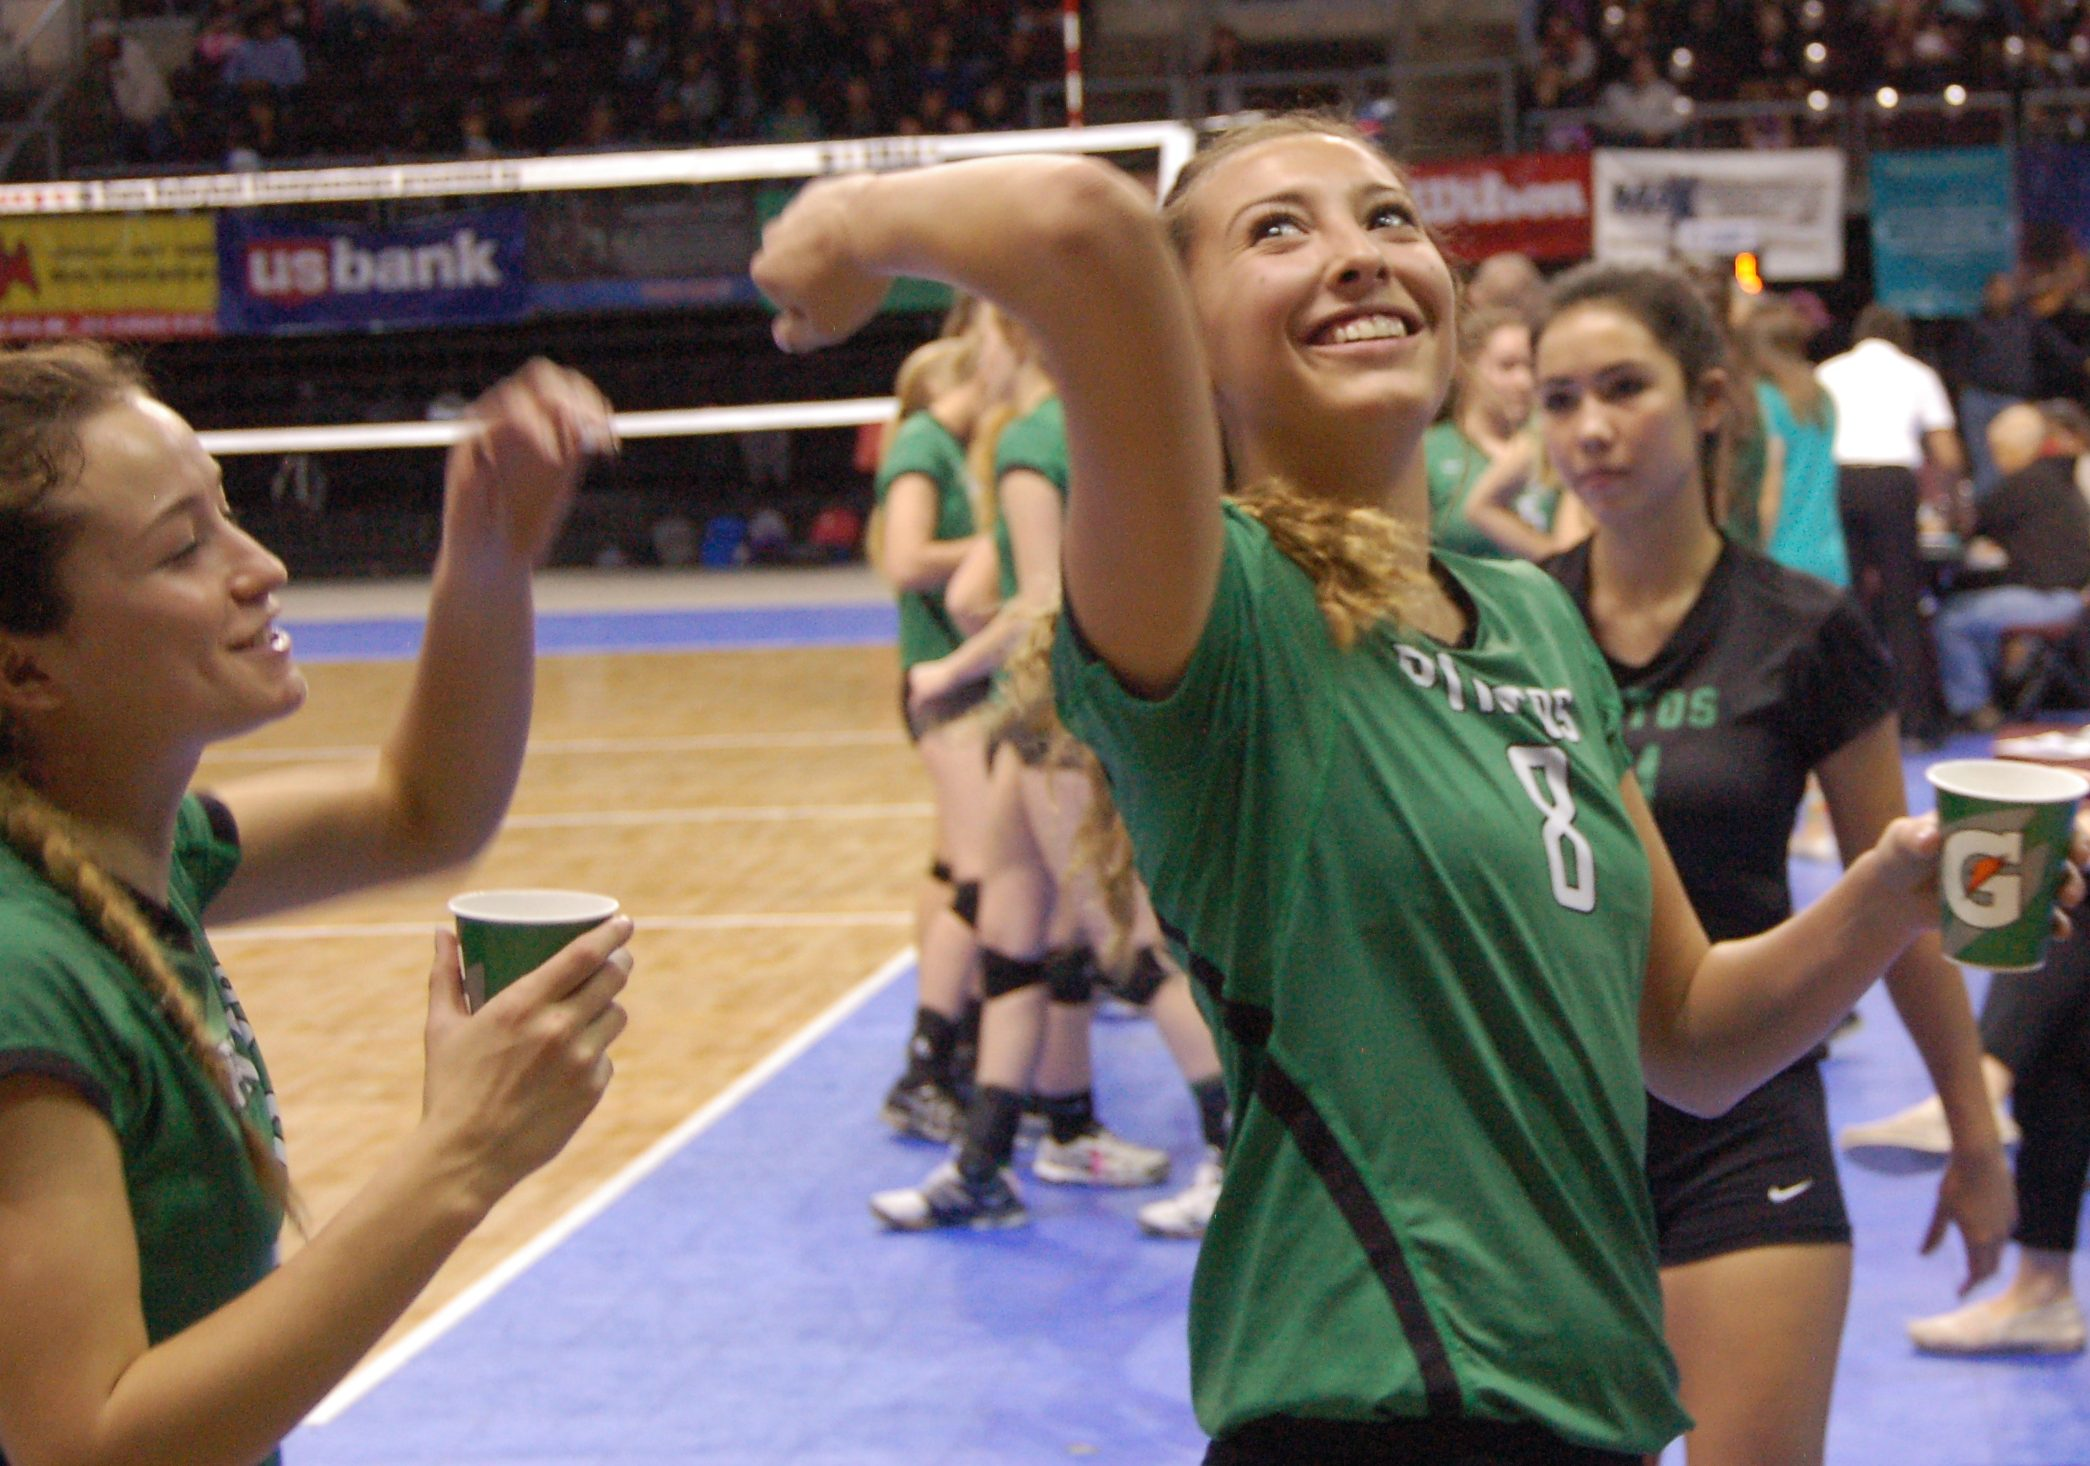 Moriarty volleyball's 'great season' ends at 4A state semifinals